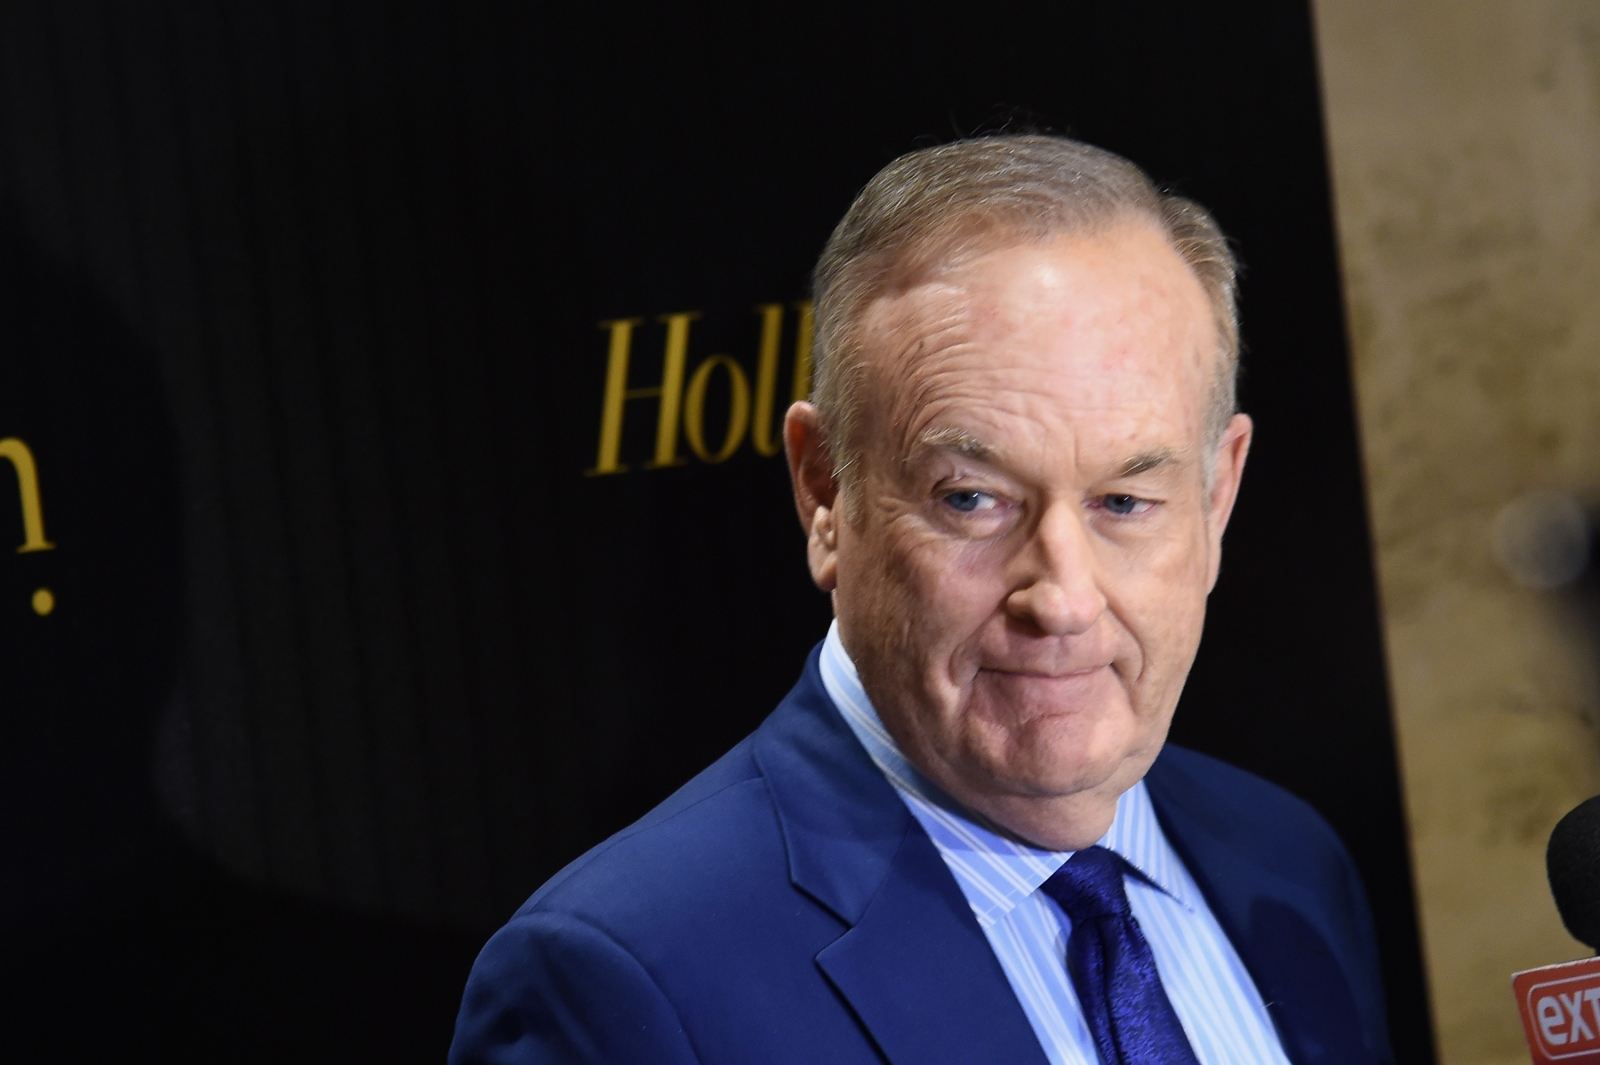 O'Reilly is out at Fox but influence endures; career too?